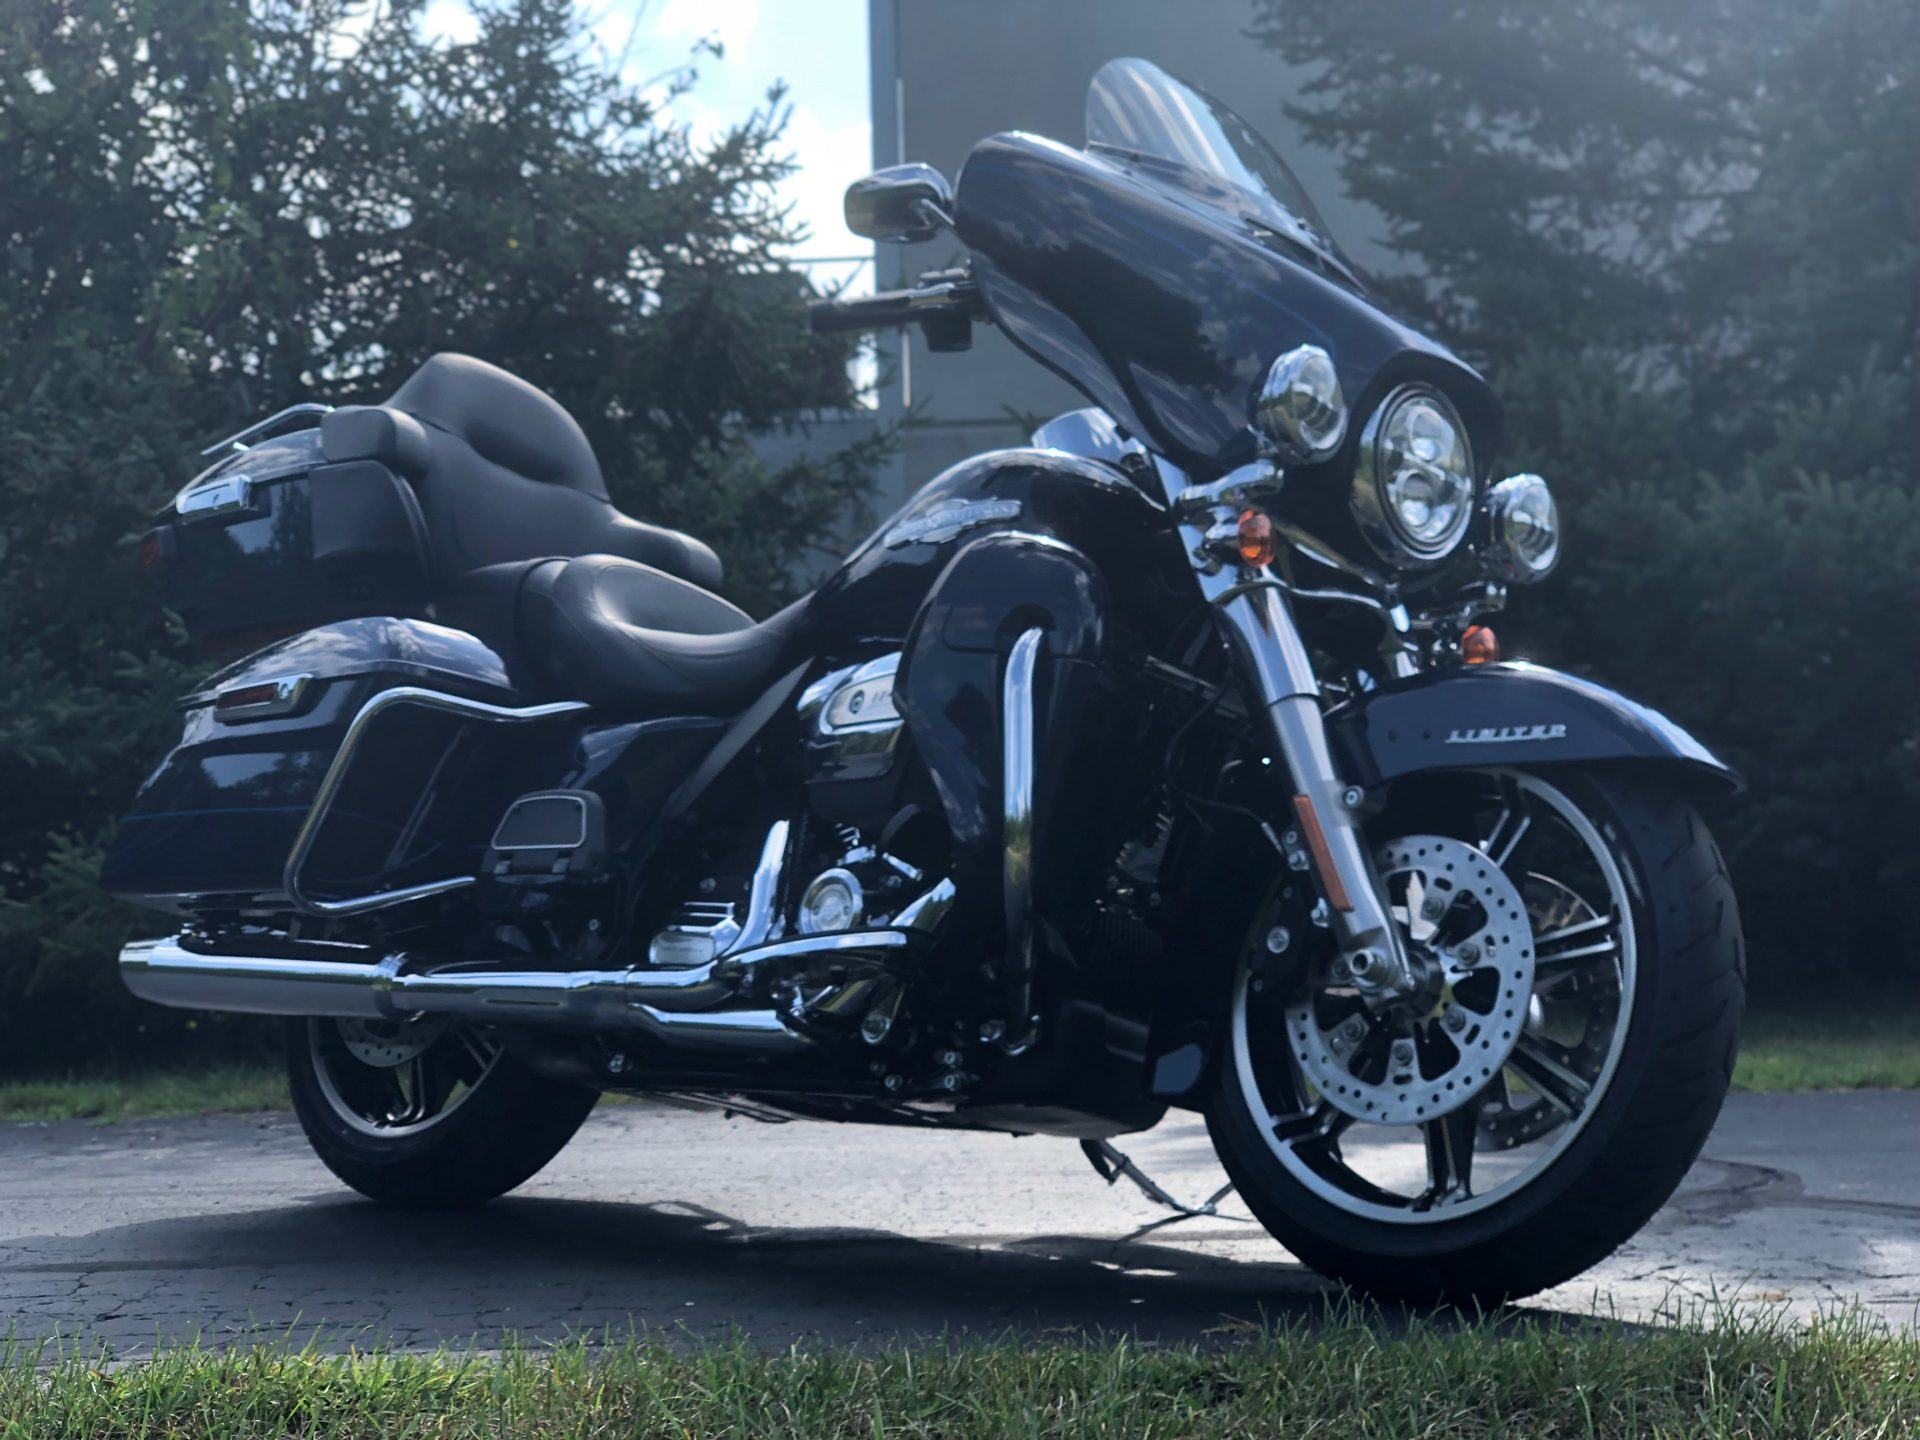 2020 Harley-Davidson Electra Glide Ultra Limited in Portage, Michigan - Photo 5